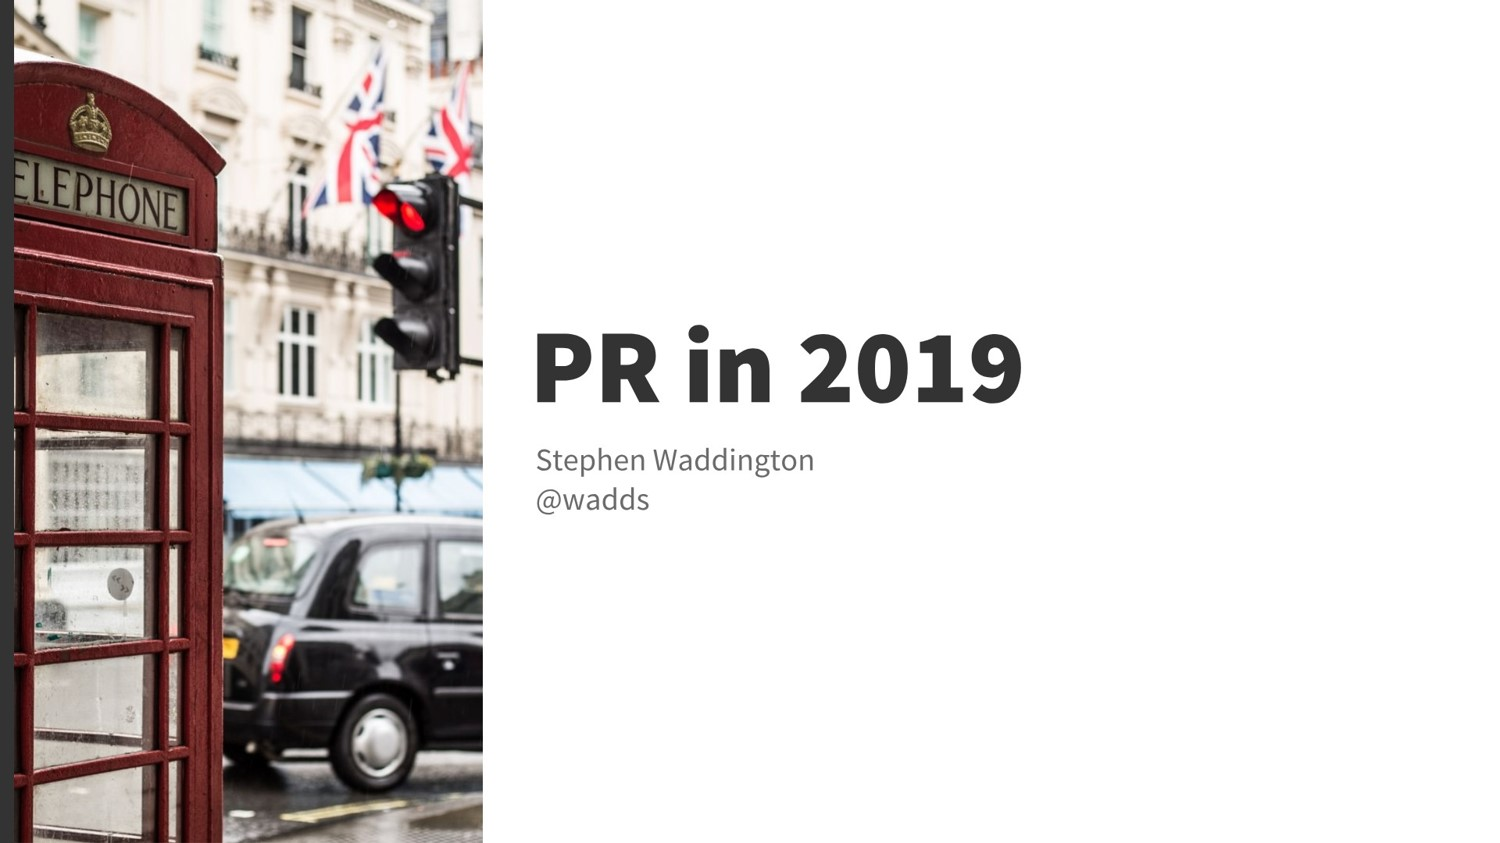 wadds.co.uk - Public relations in 2019